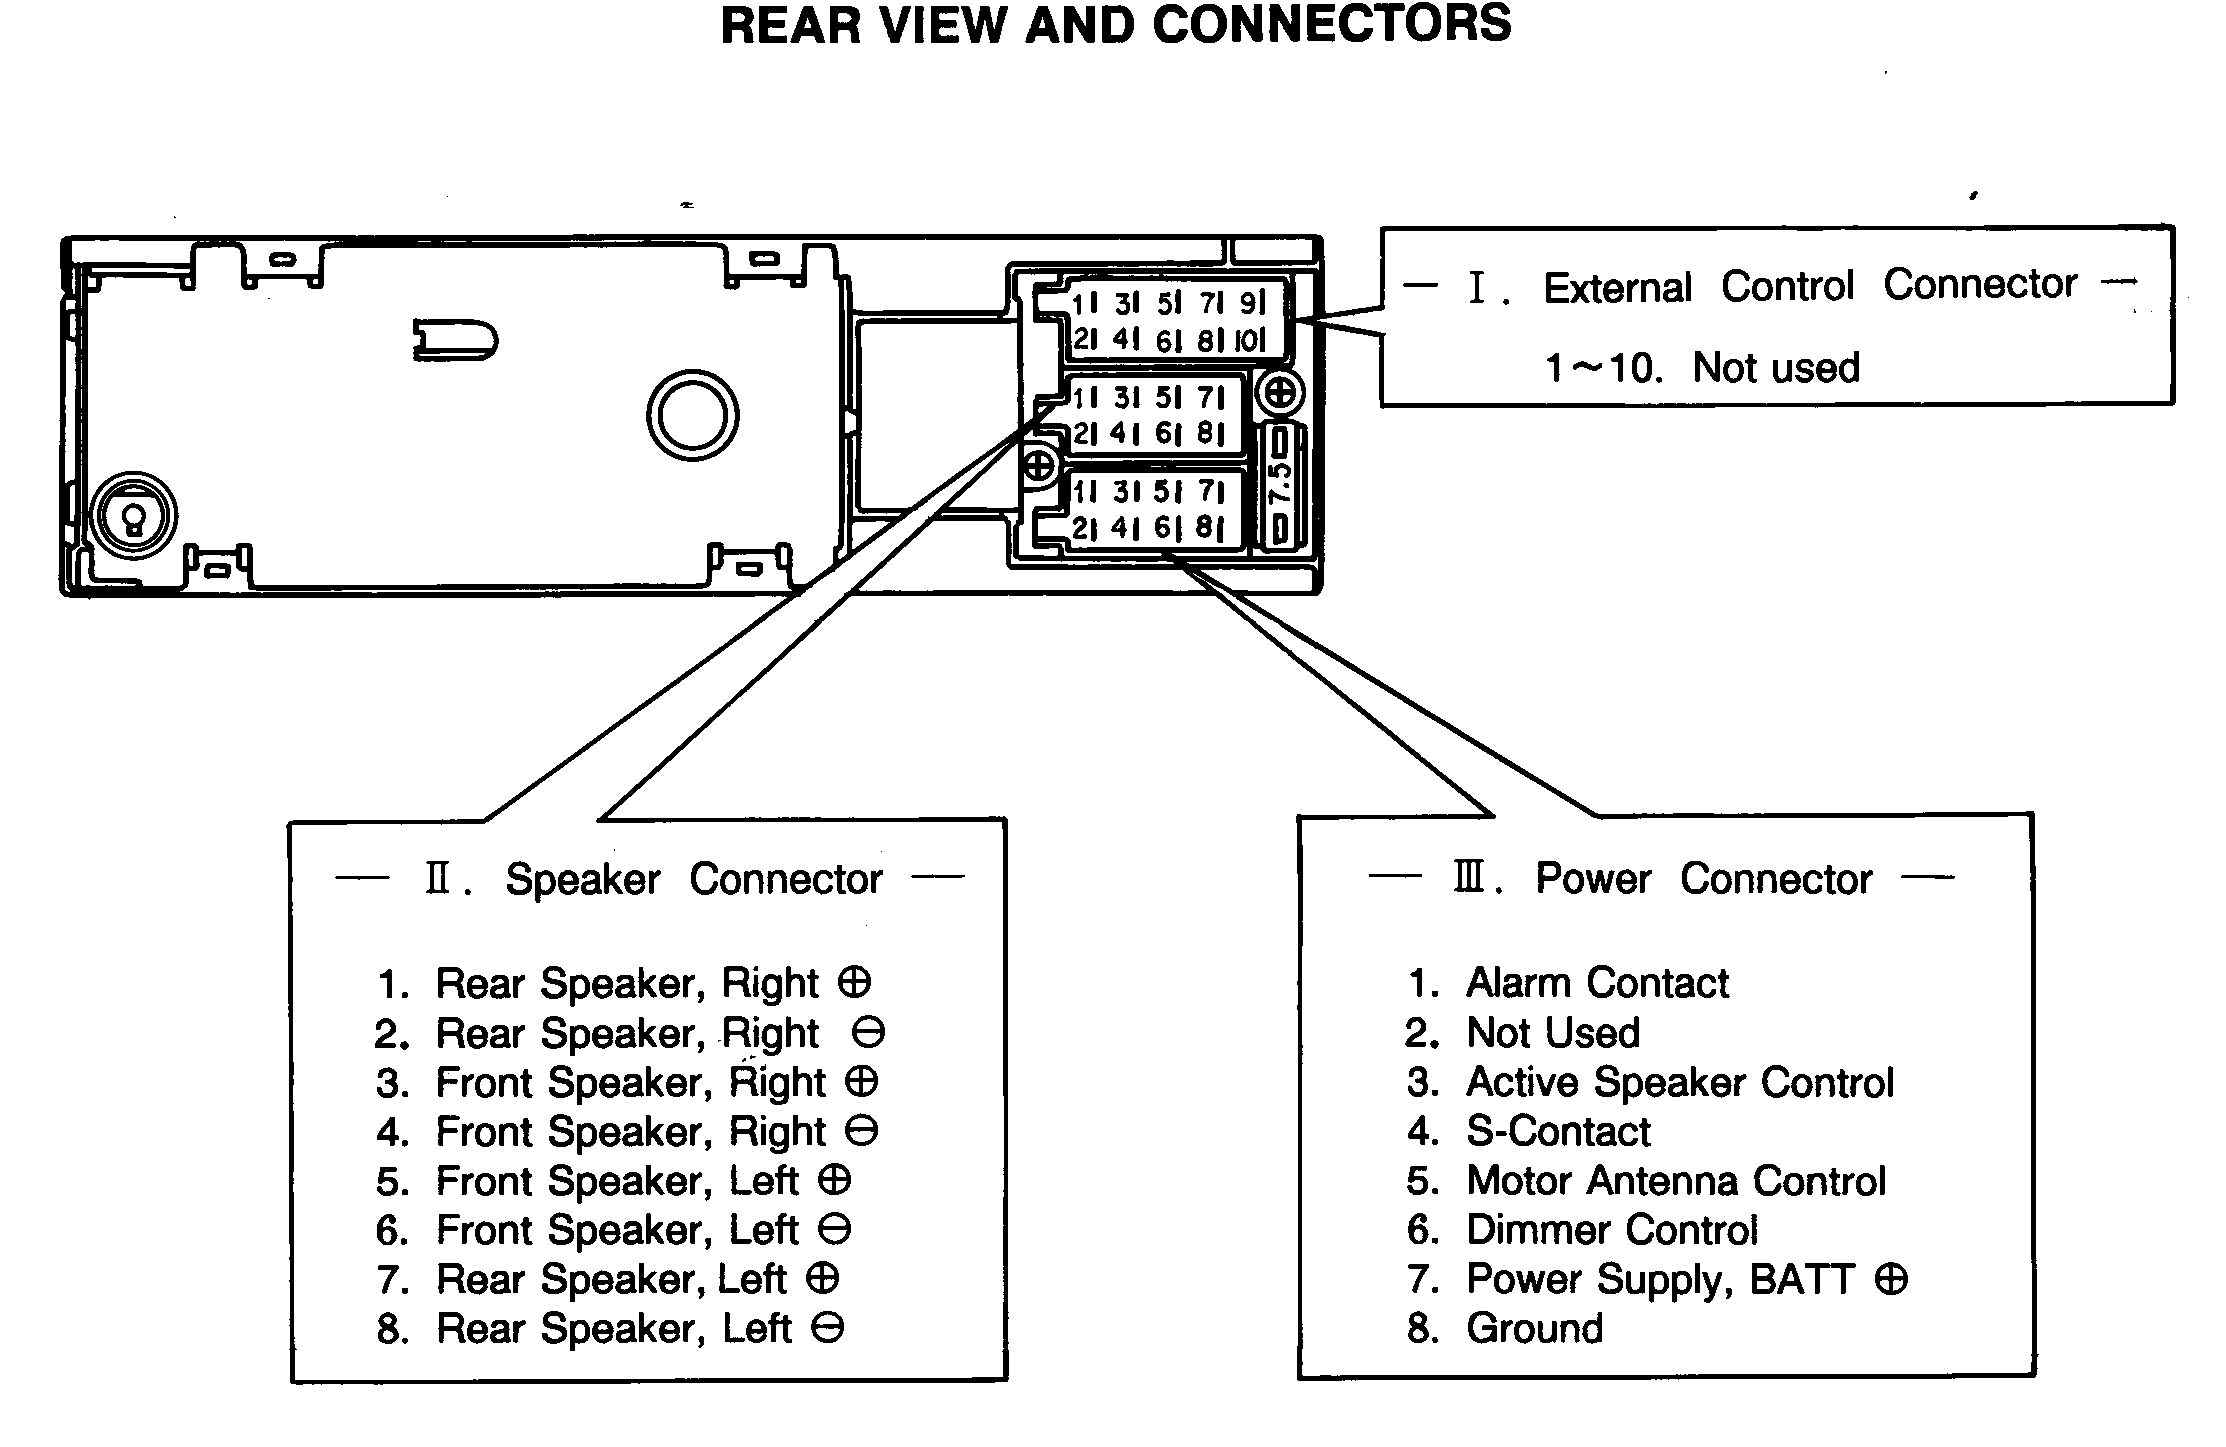 WireHarnessVW121401 car audio wiring diagram electrical wiring diagrams \u2022 free wiring Aiphone Intercom Systems Wiring Diagram at crackthecode.co